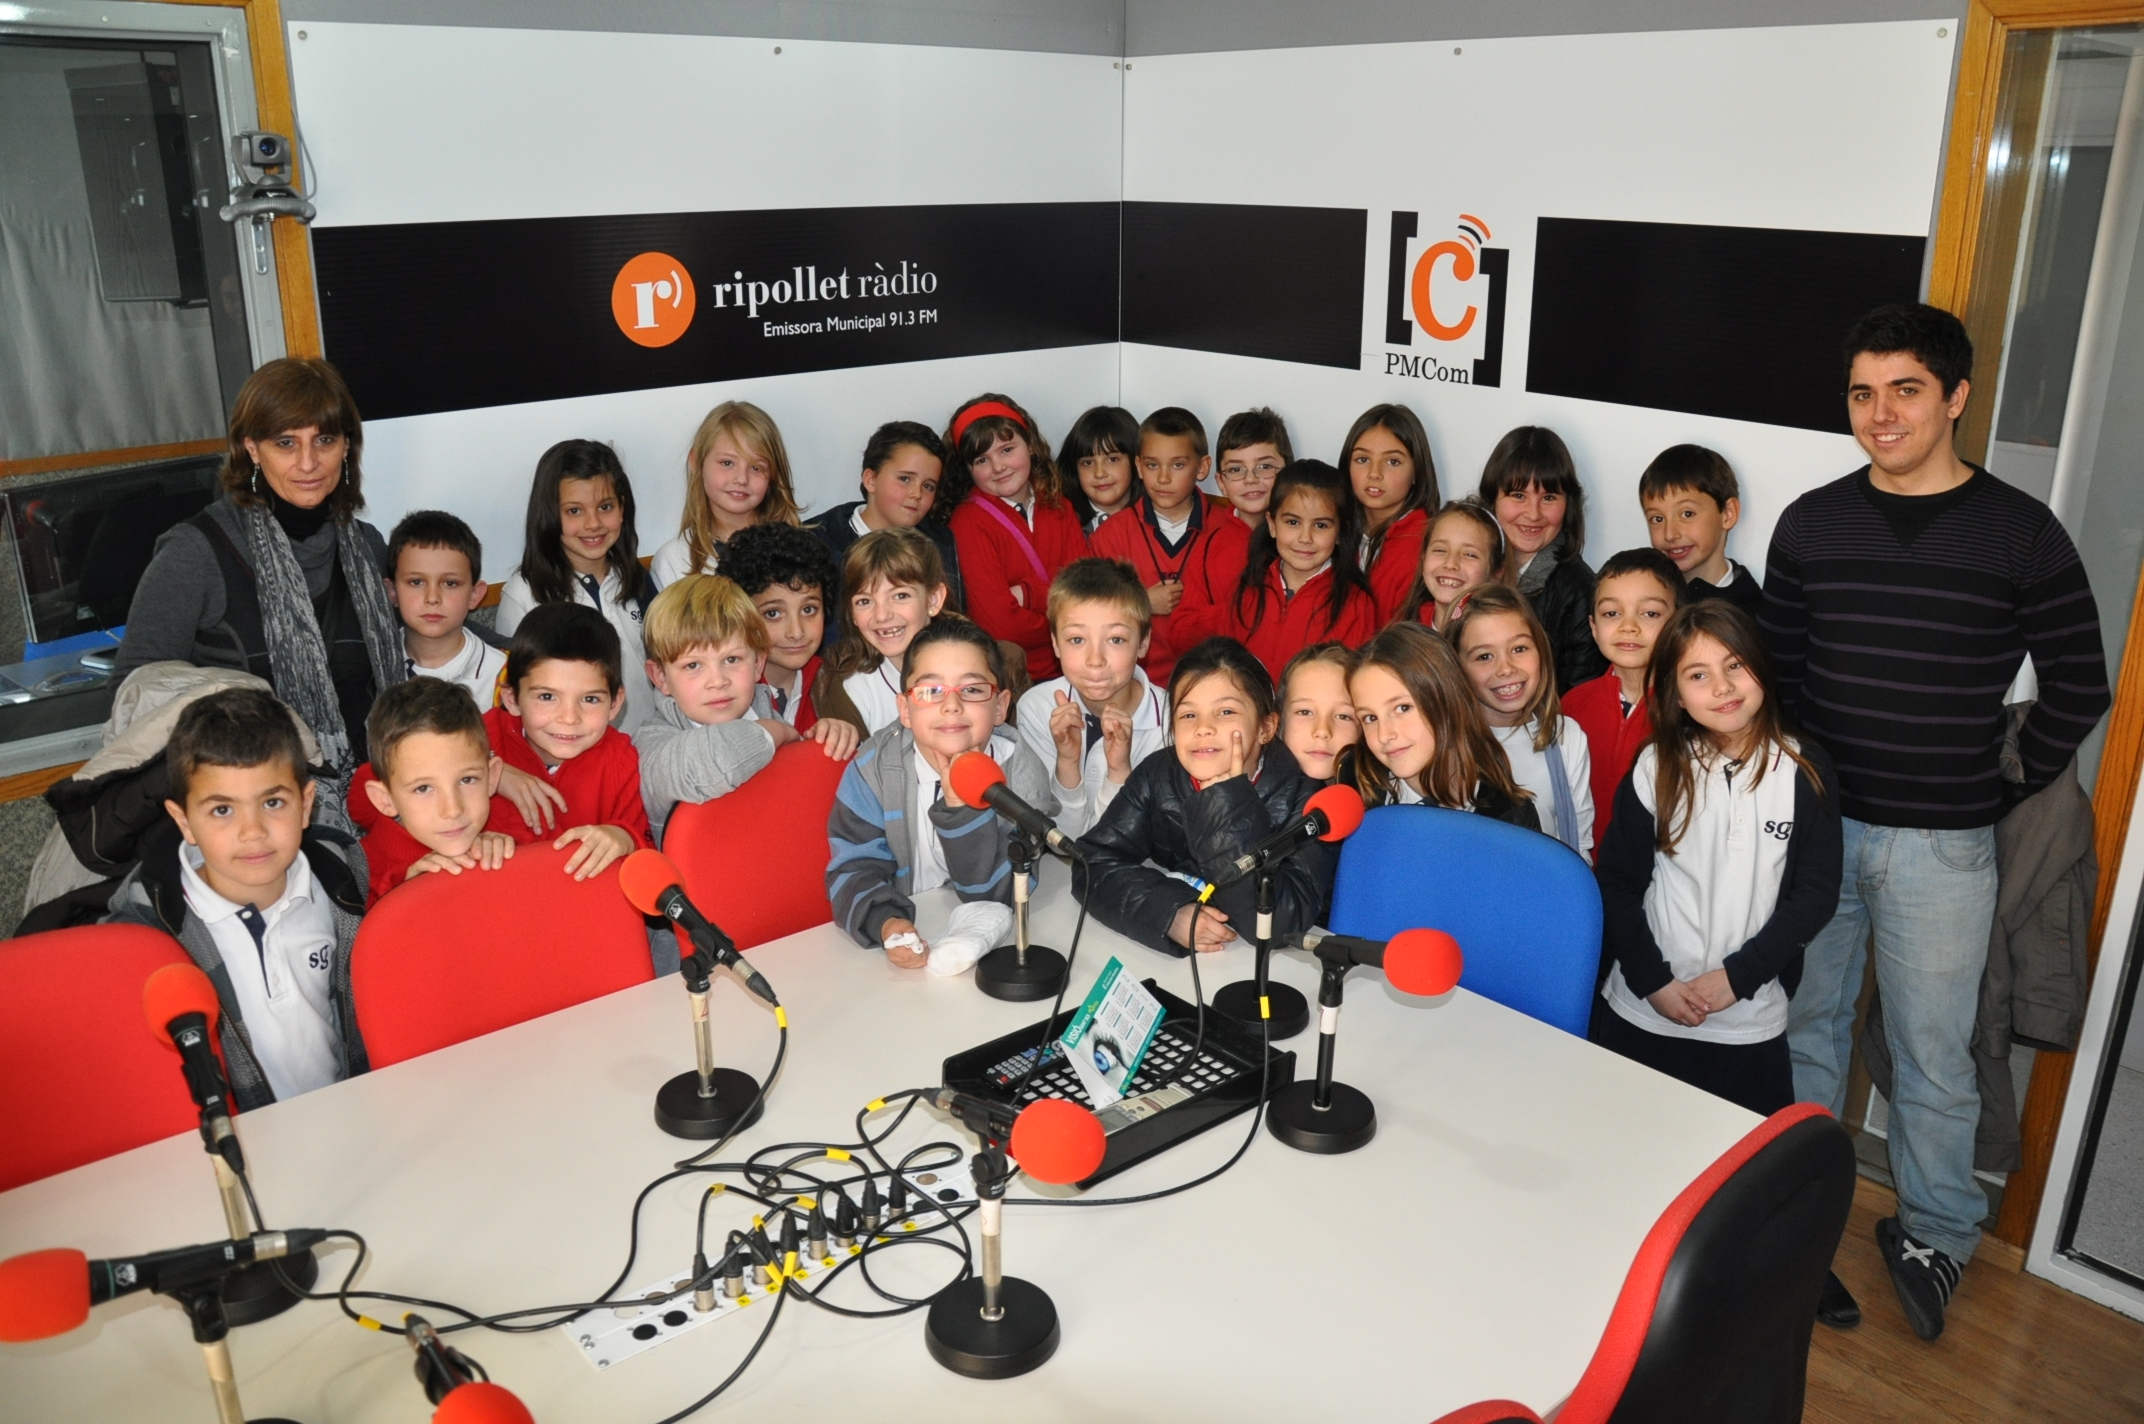 Desenes d'alumnes visiten la r&#224;dio -Imatge 5-